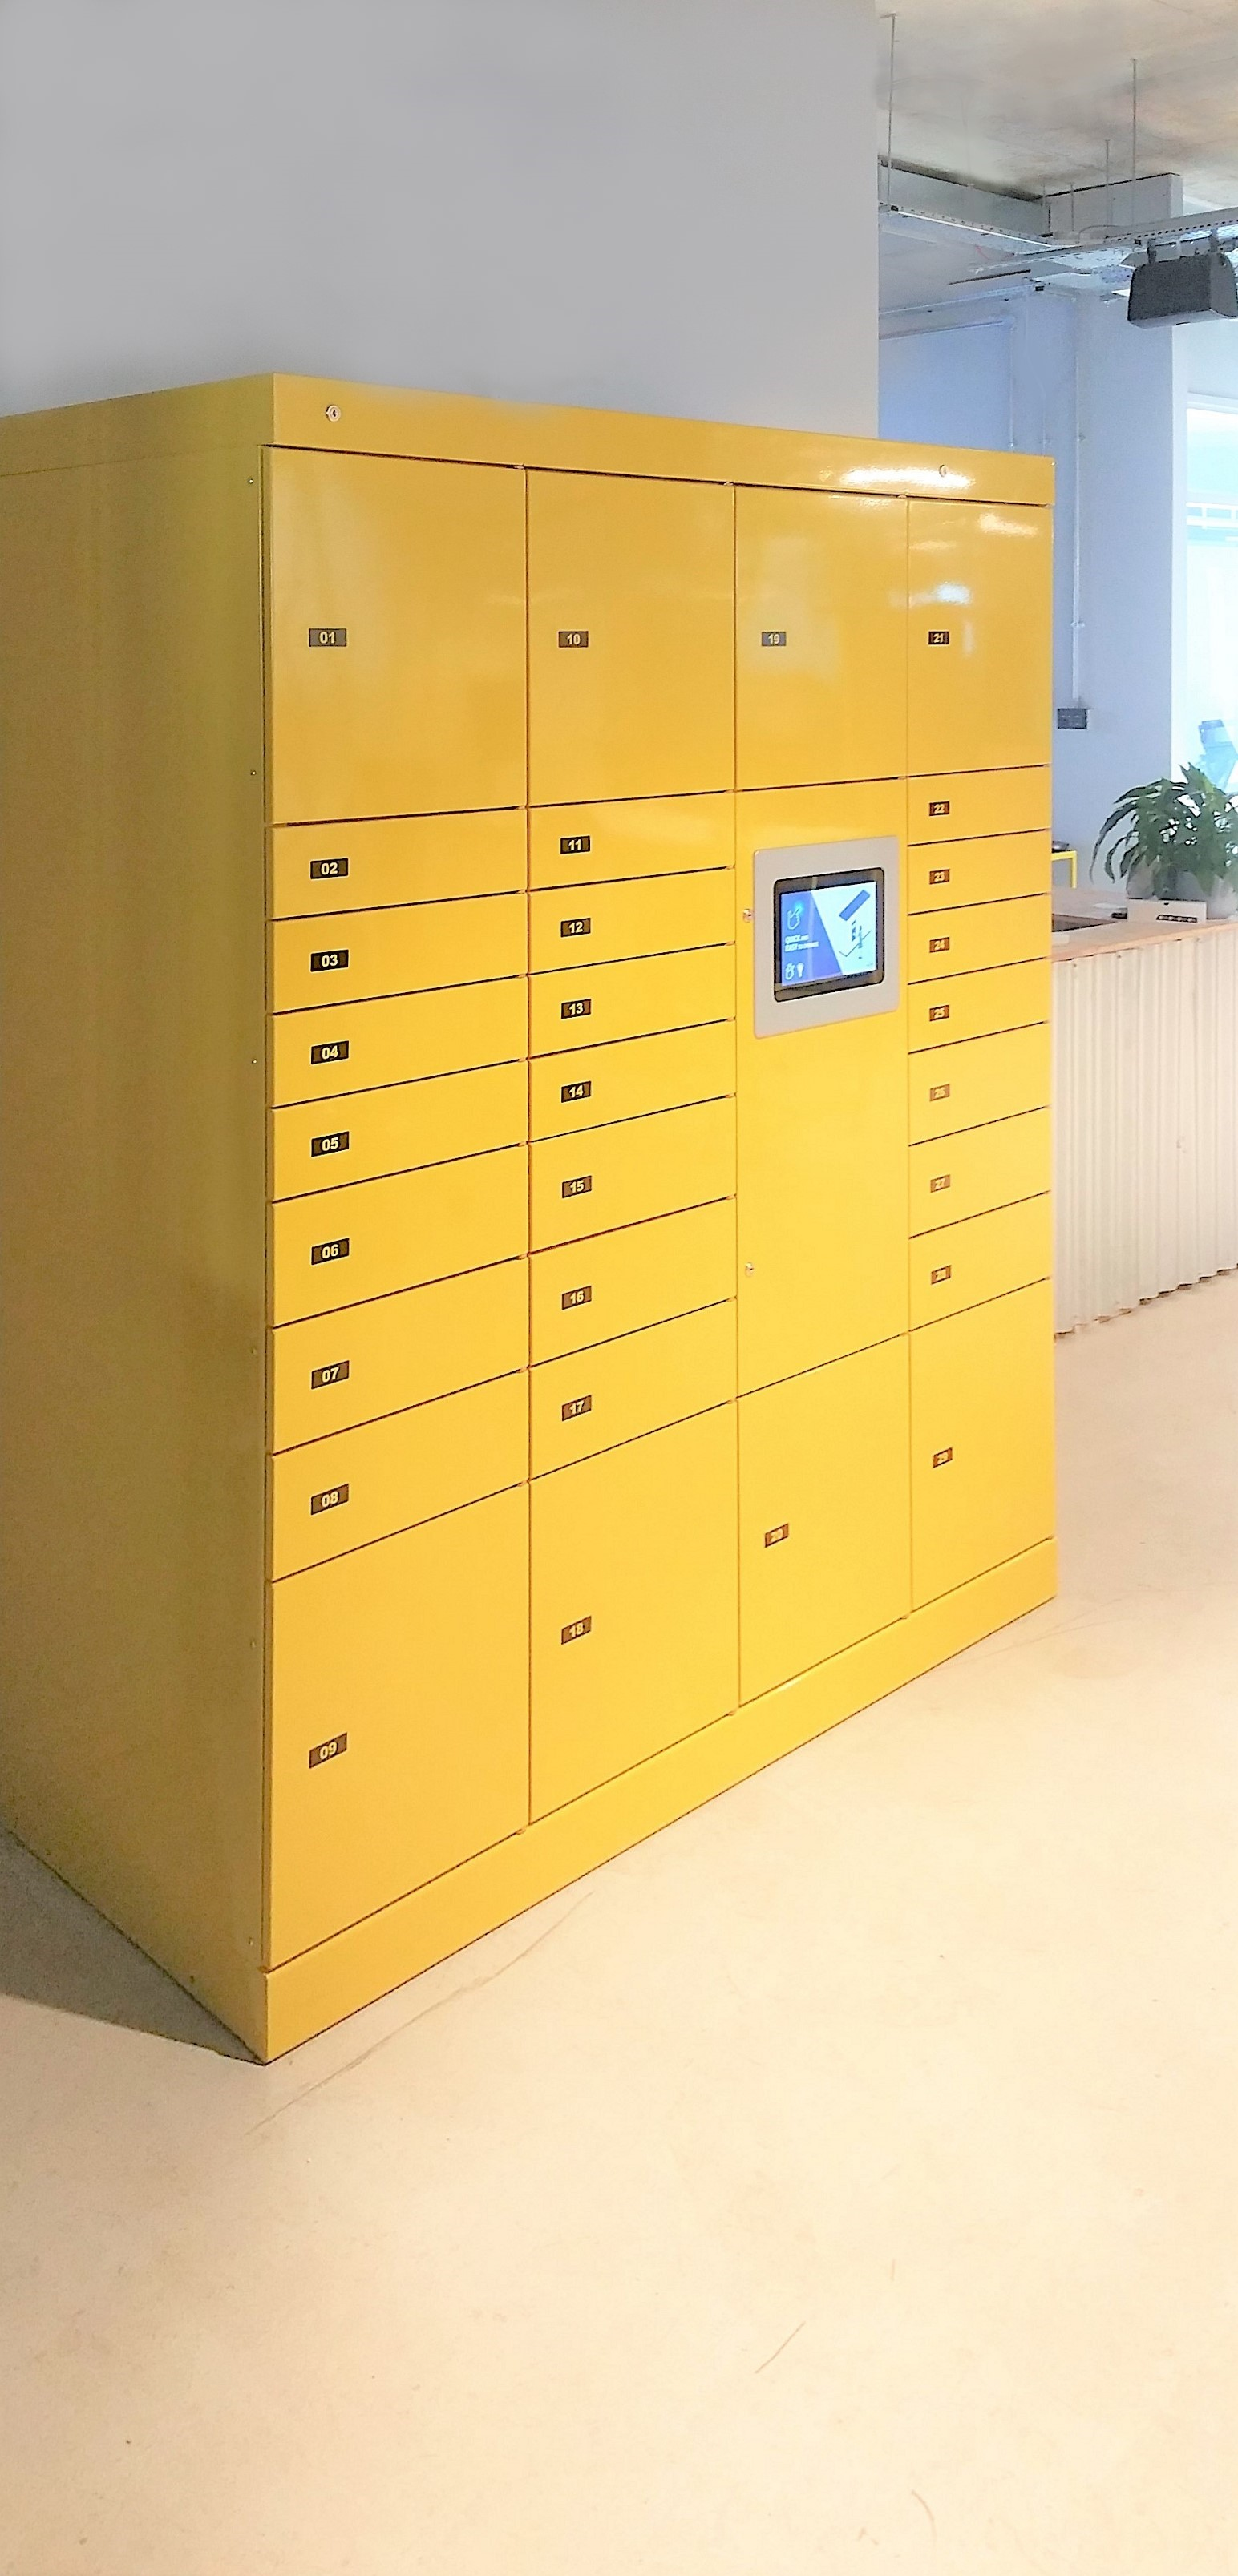 Parcel locker Servicebox